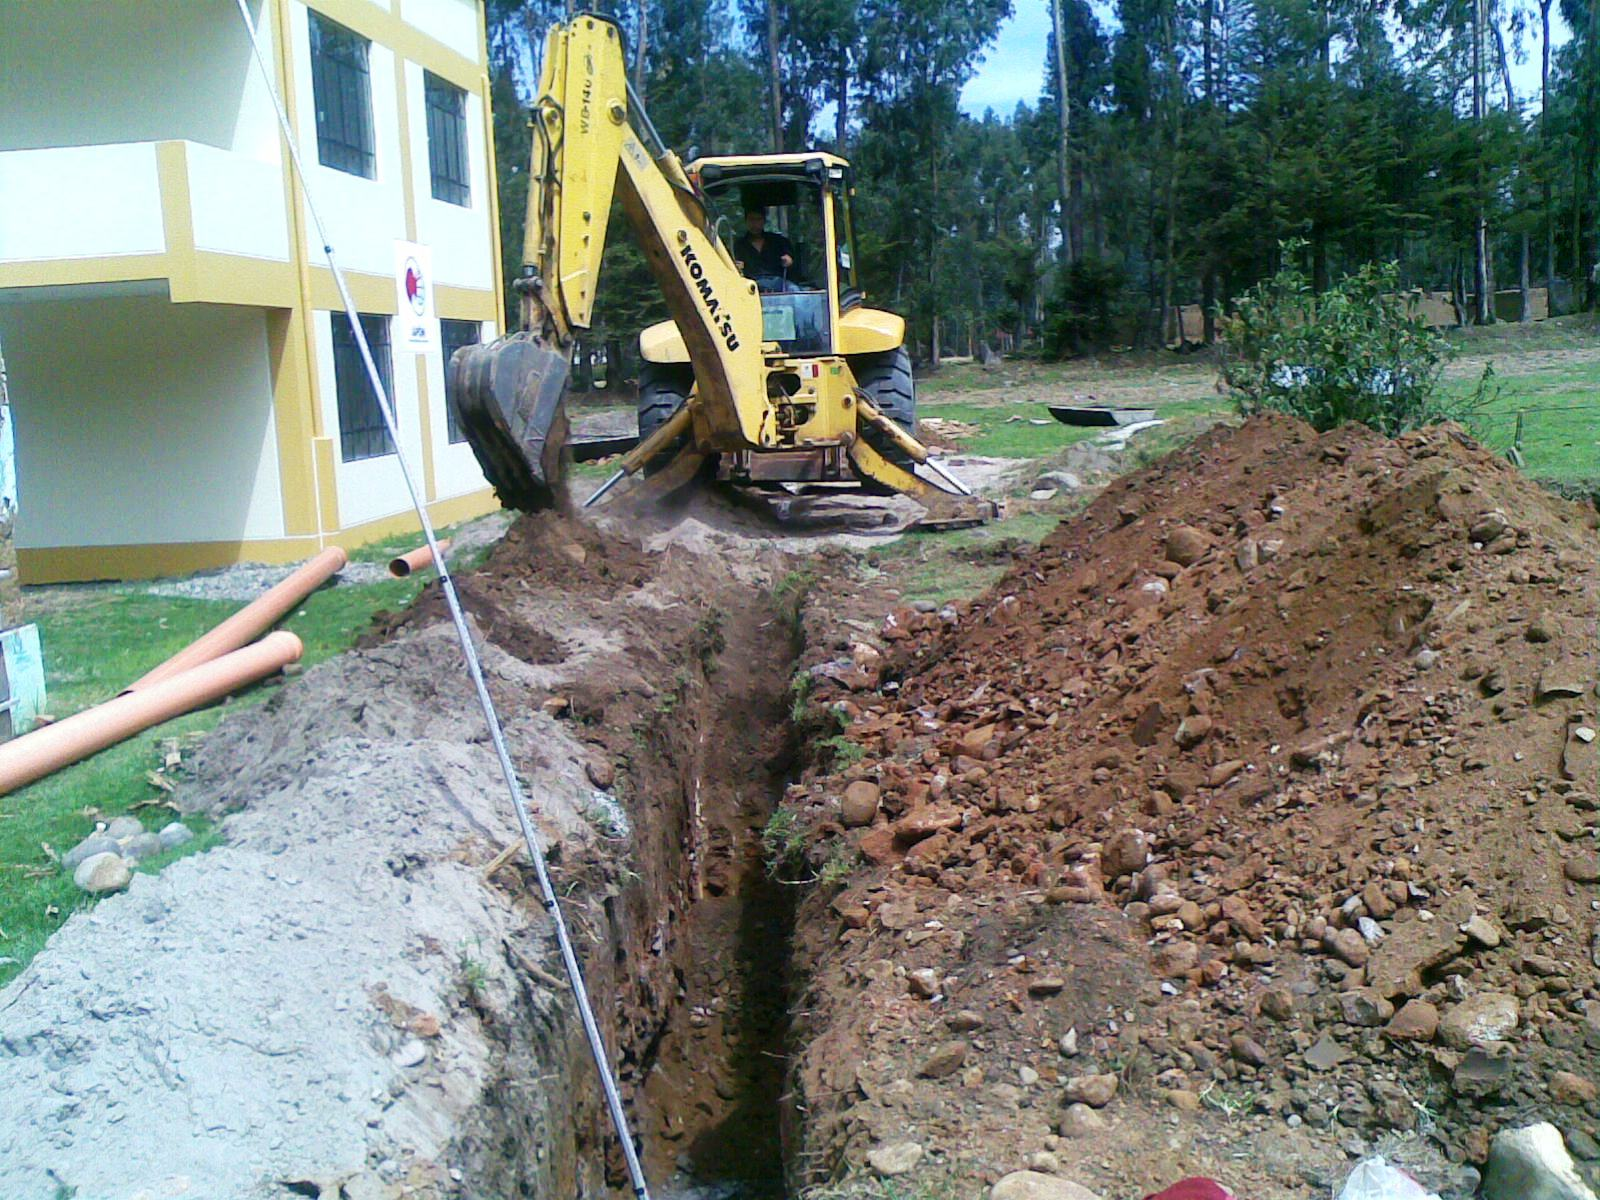 Francisca Mayer: Digging the trench